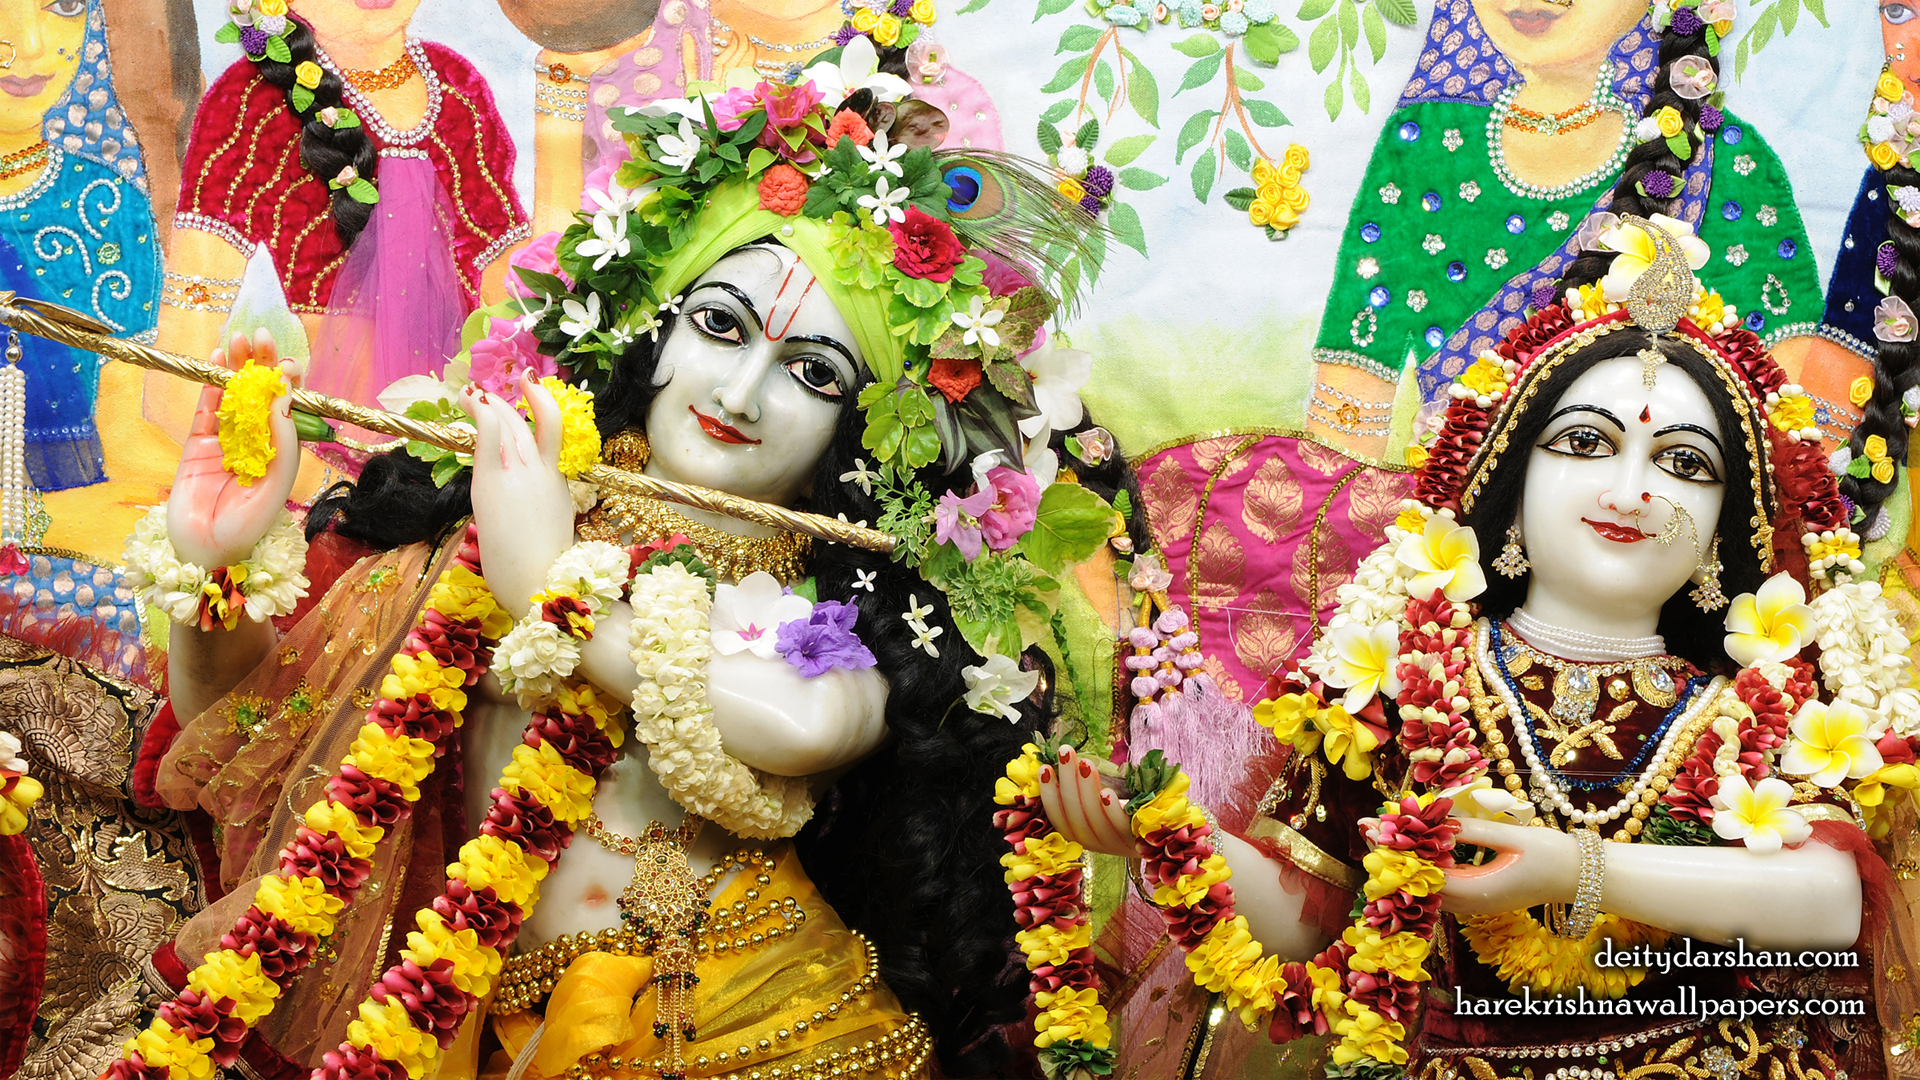 Sri Sri Radha Gopinath Close up Wallpaper (066) Size 1920x1080 Download